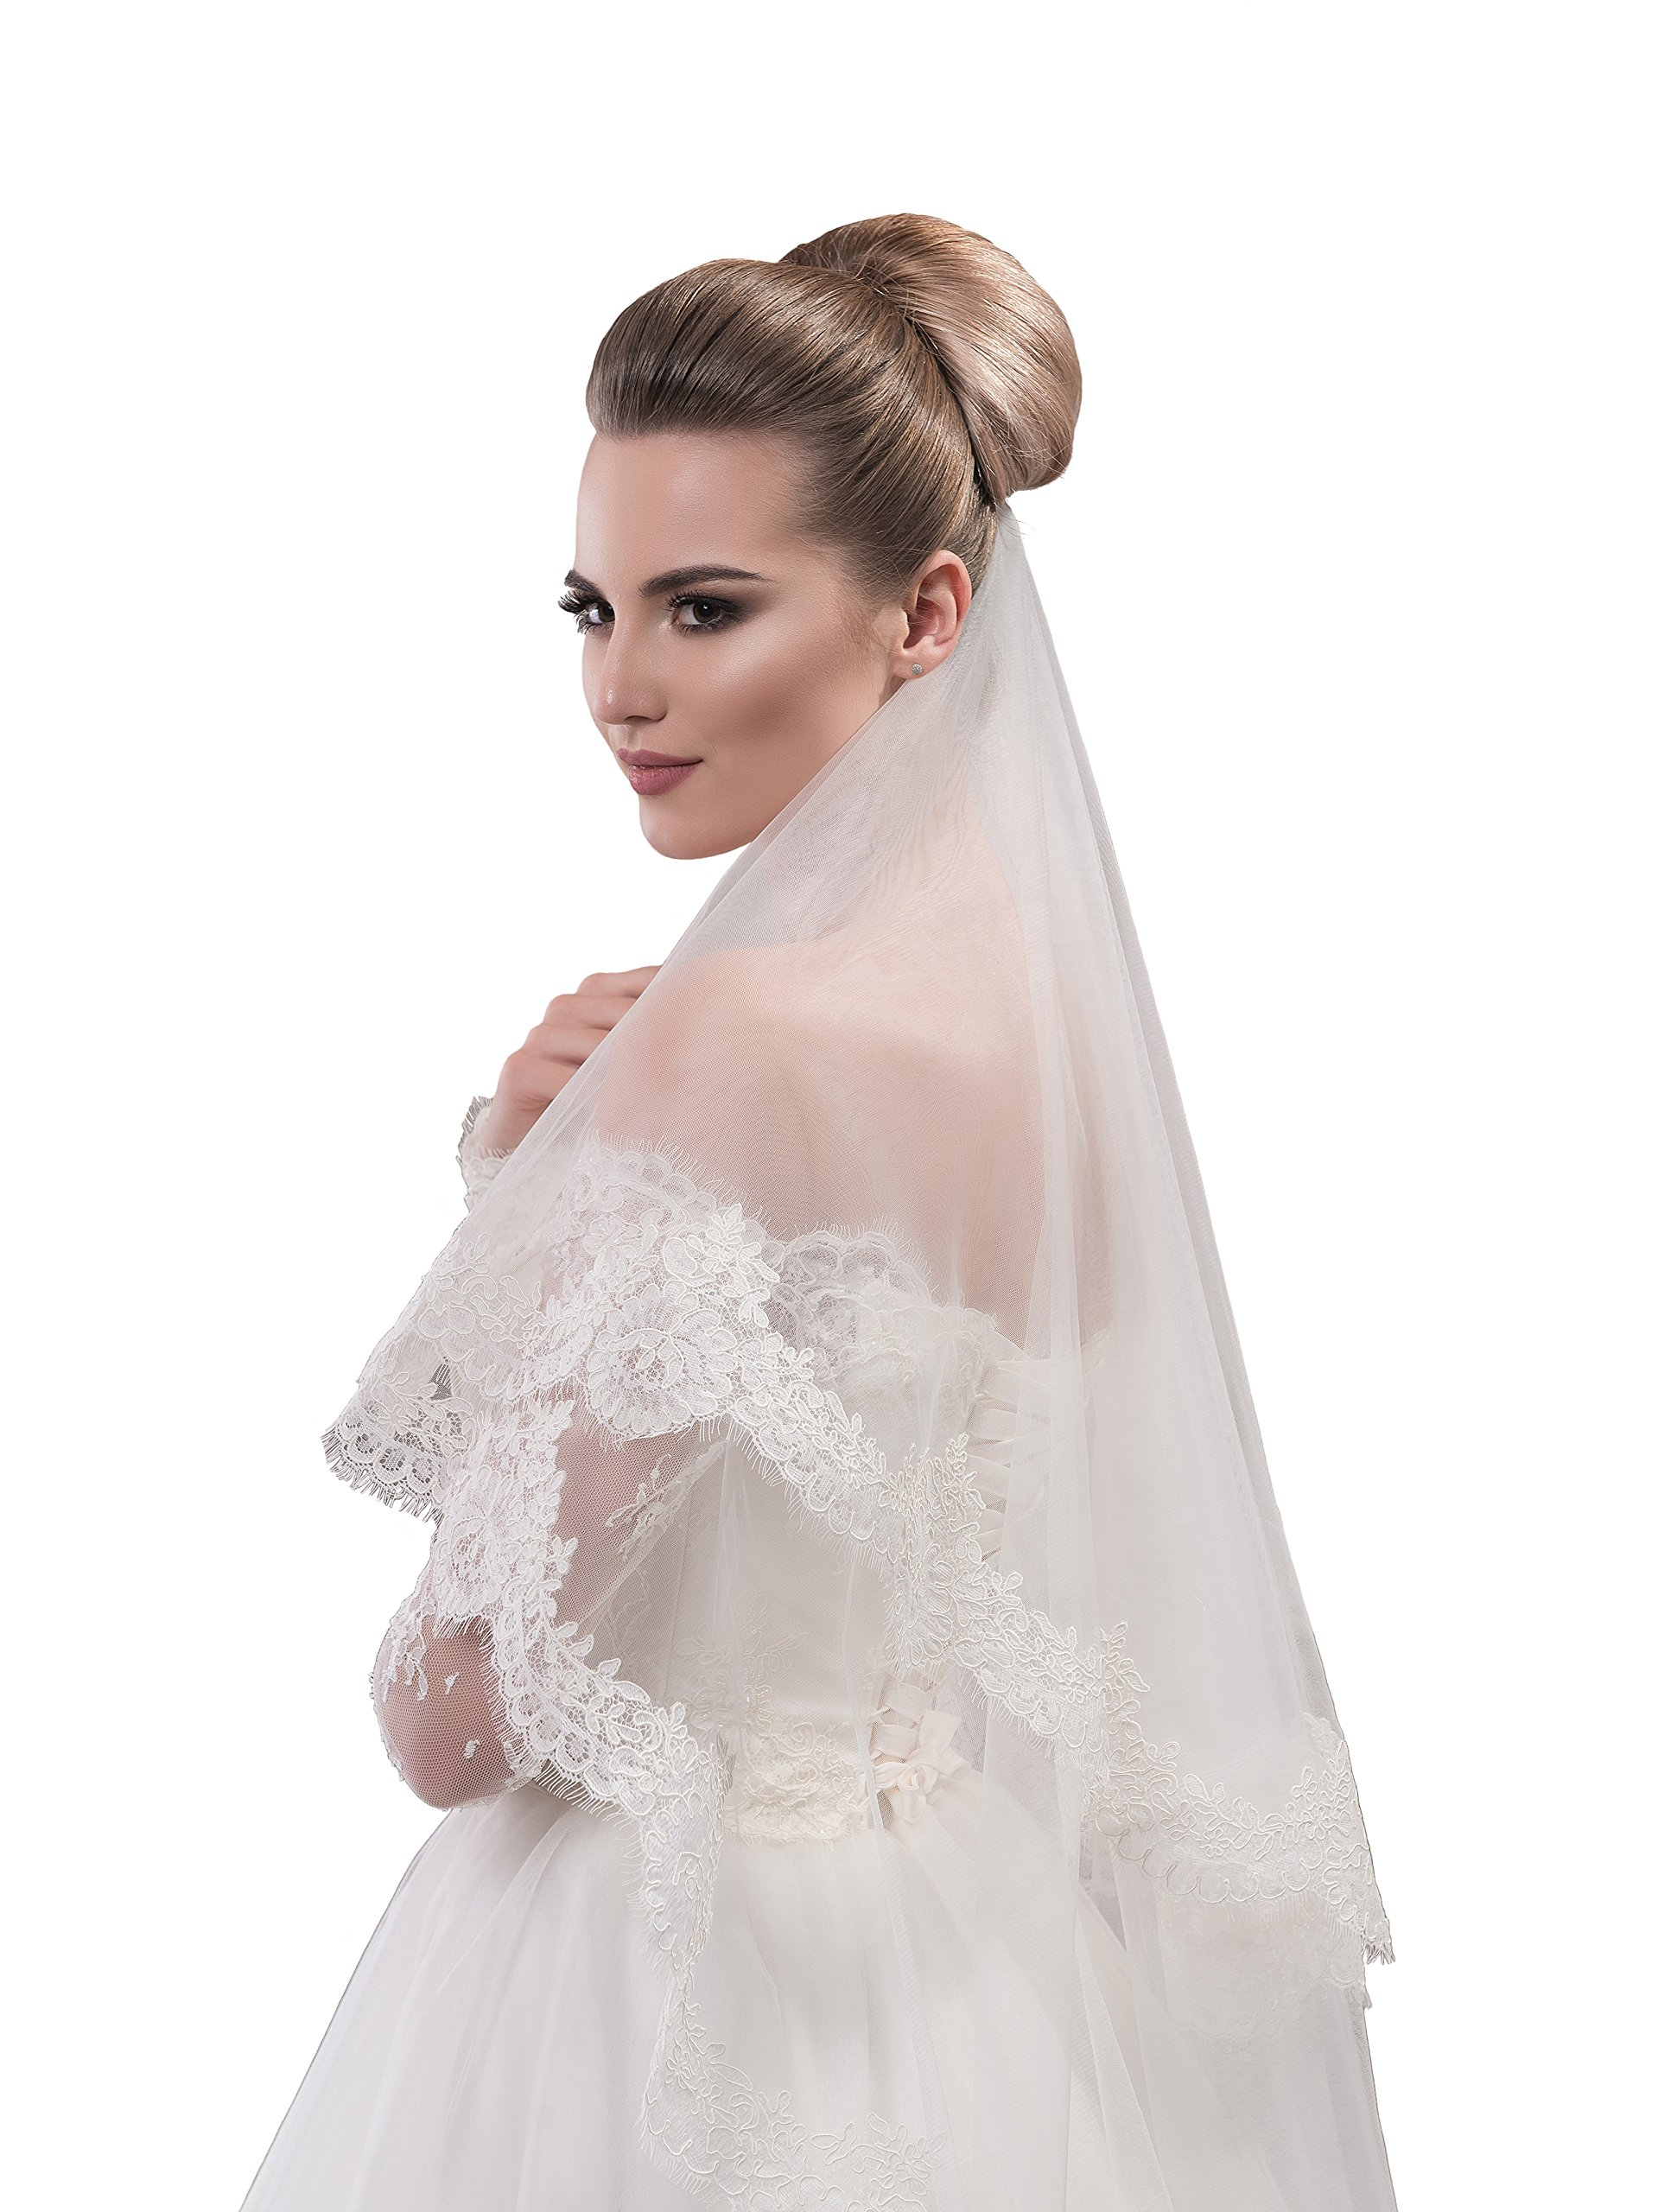 "Bridal Veil Janet from NYC Bride collection (short 30"", white)"